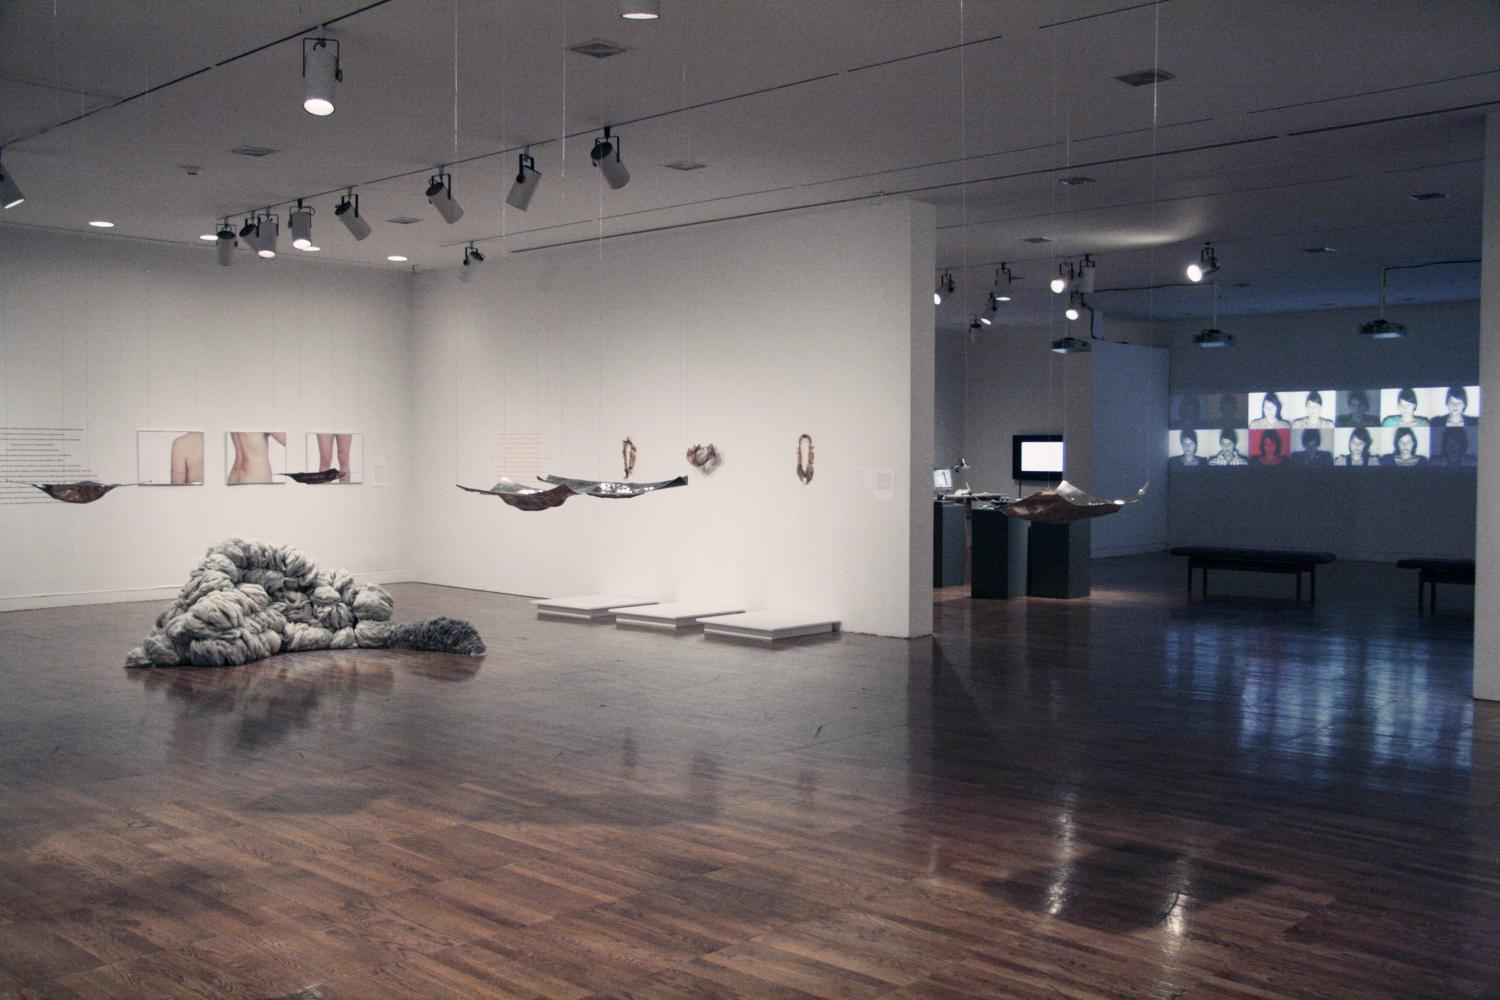 School of Art and Design Master of Fine Arts Exhibition, installation at Krannert Art Museum, 2011.